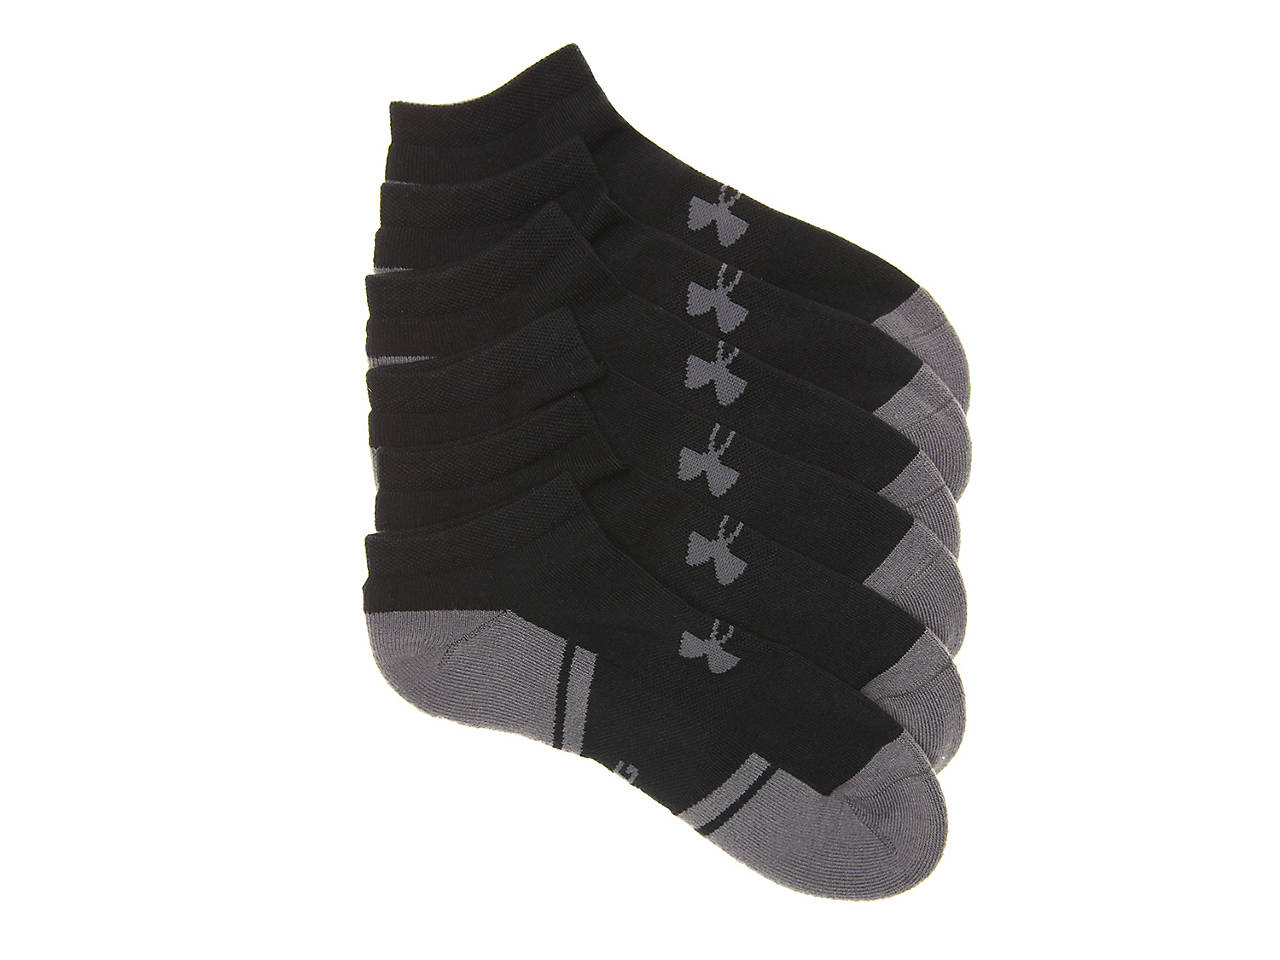 0c1e67a34e9f Resistor 3 Men's No Show Socks - 6 Pack